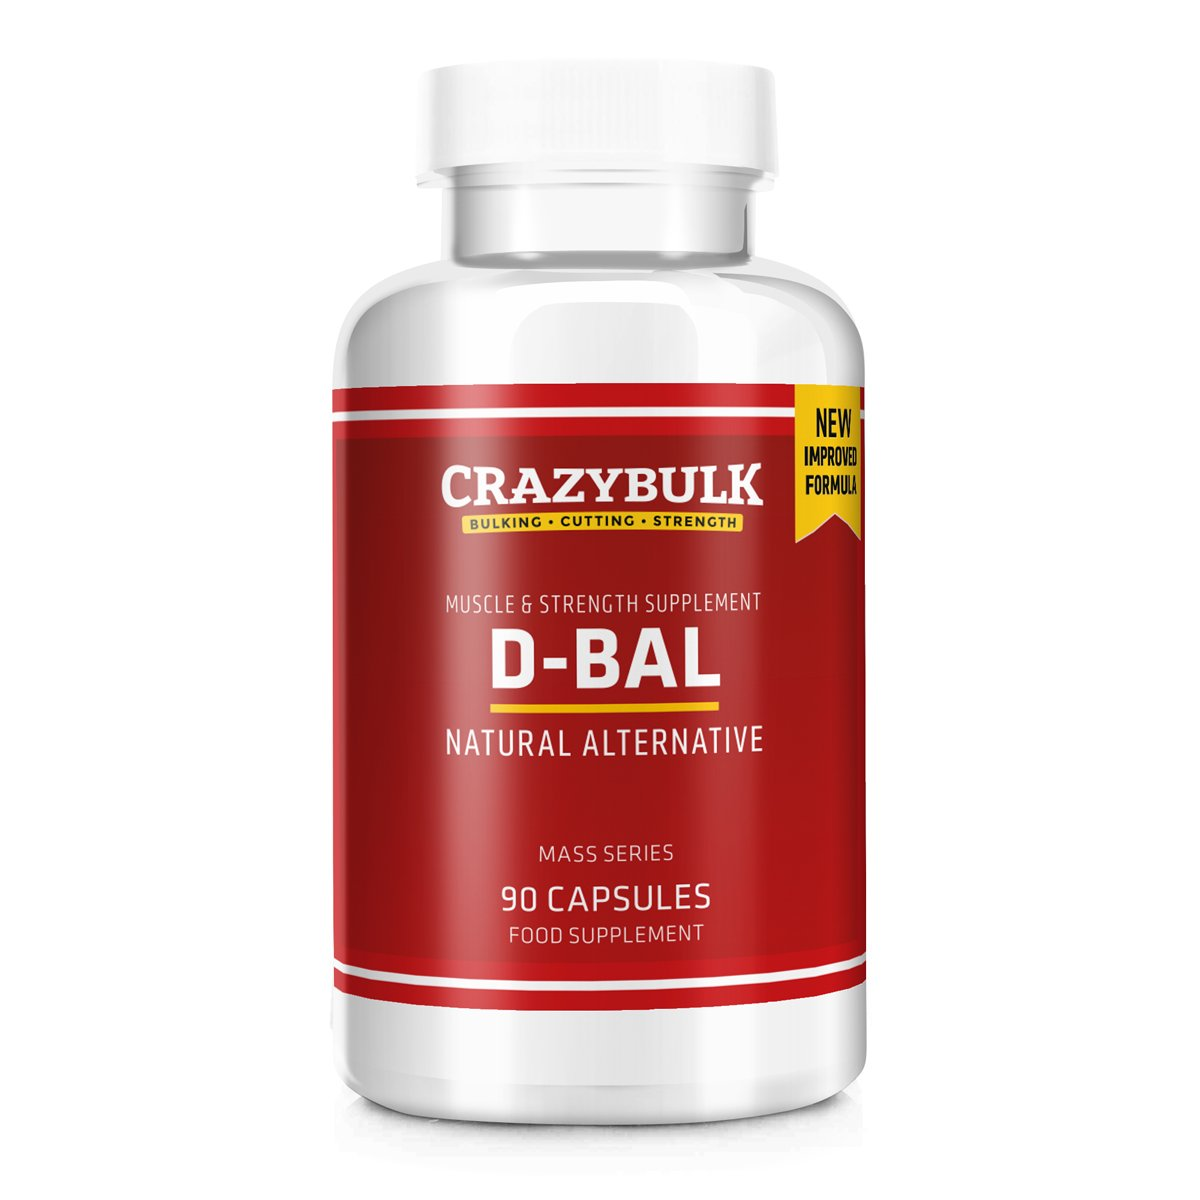 Mind-Blowing CrazyBulk D-Bal Review: #1 For Mass & Strength?